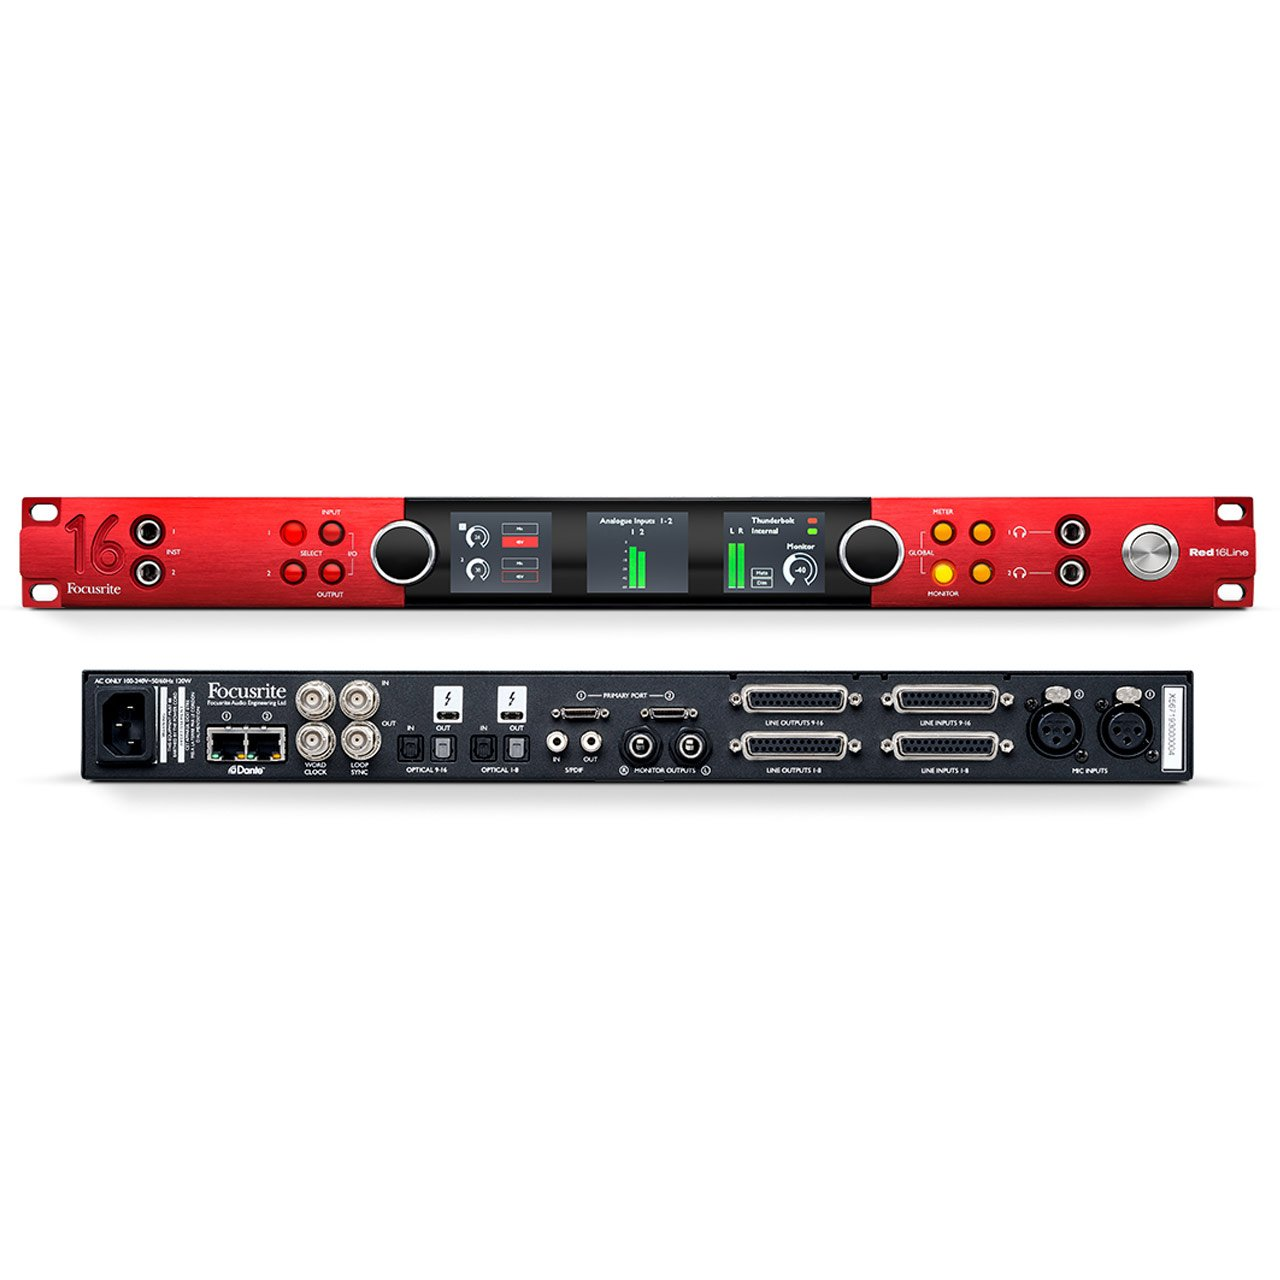 Thunderbolt Interfaces - Focusrite Red 16Line - 64 I/O Pro Tools | HD & Thunderbolt 3 Audio Interface, 32 Dante I/O